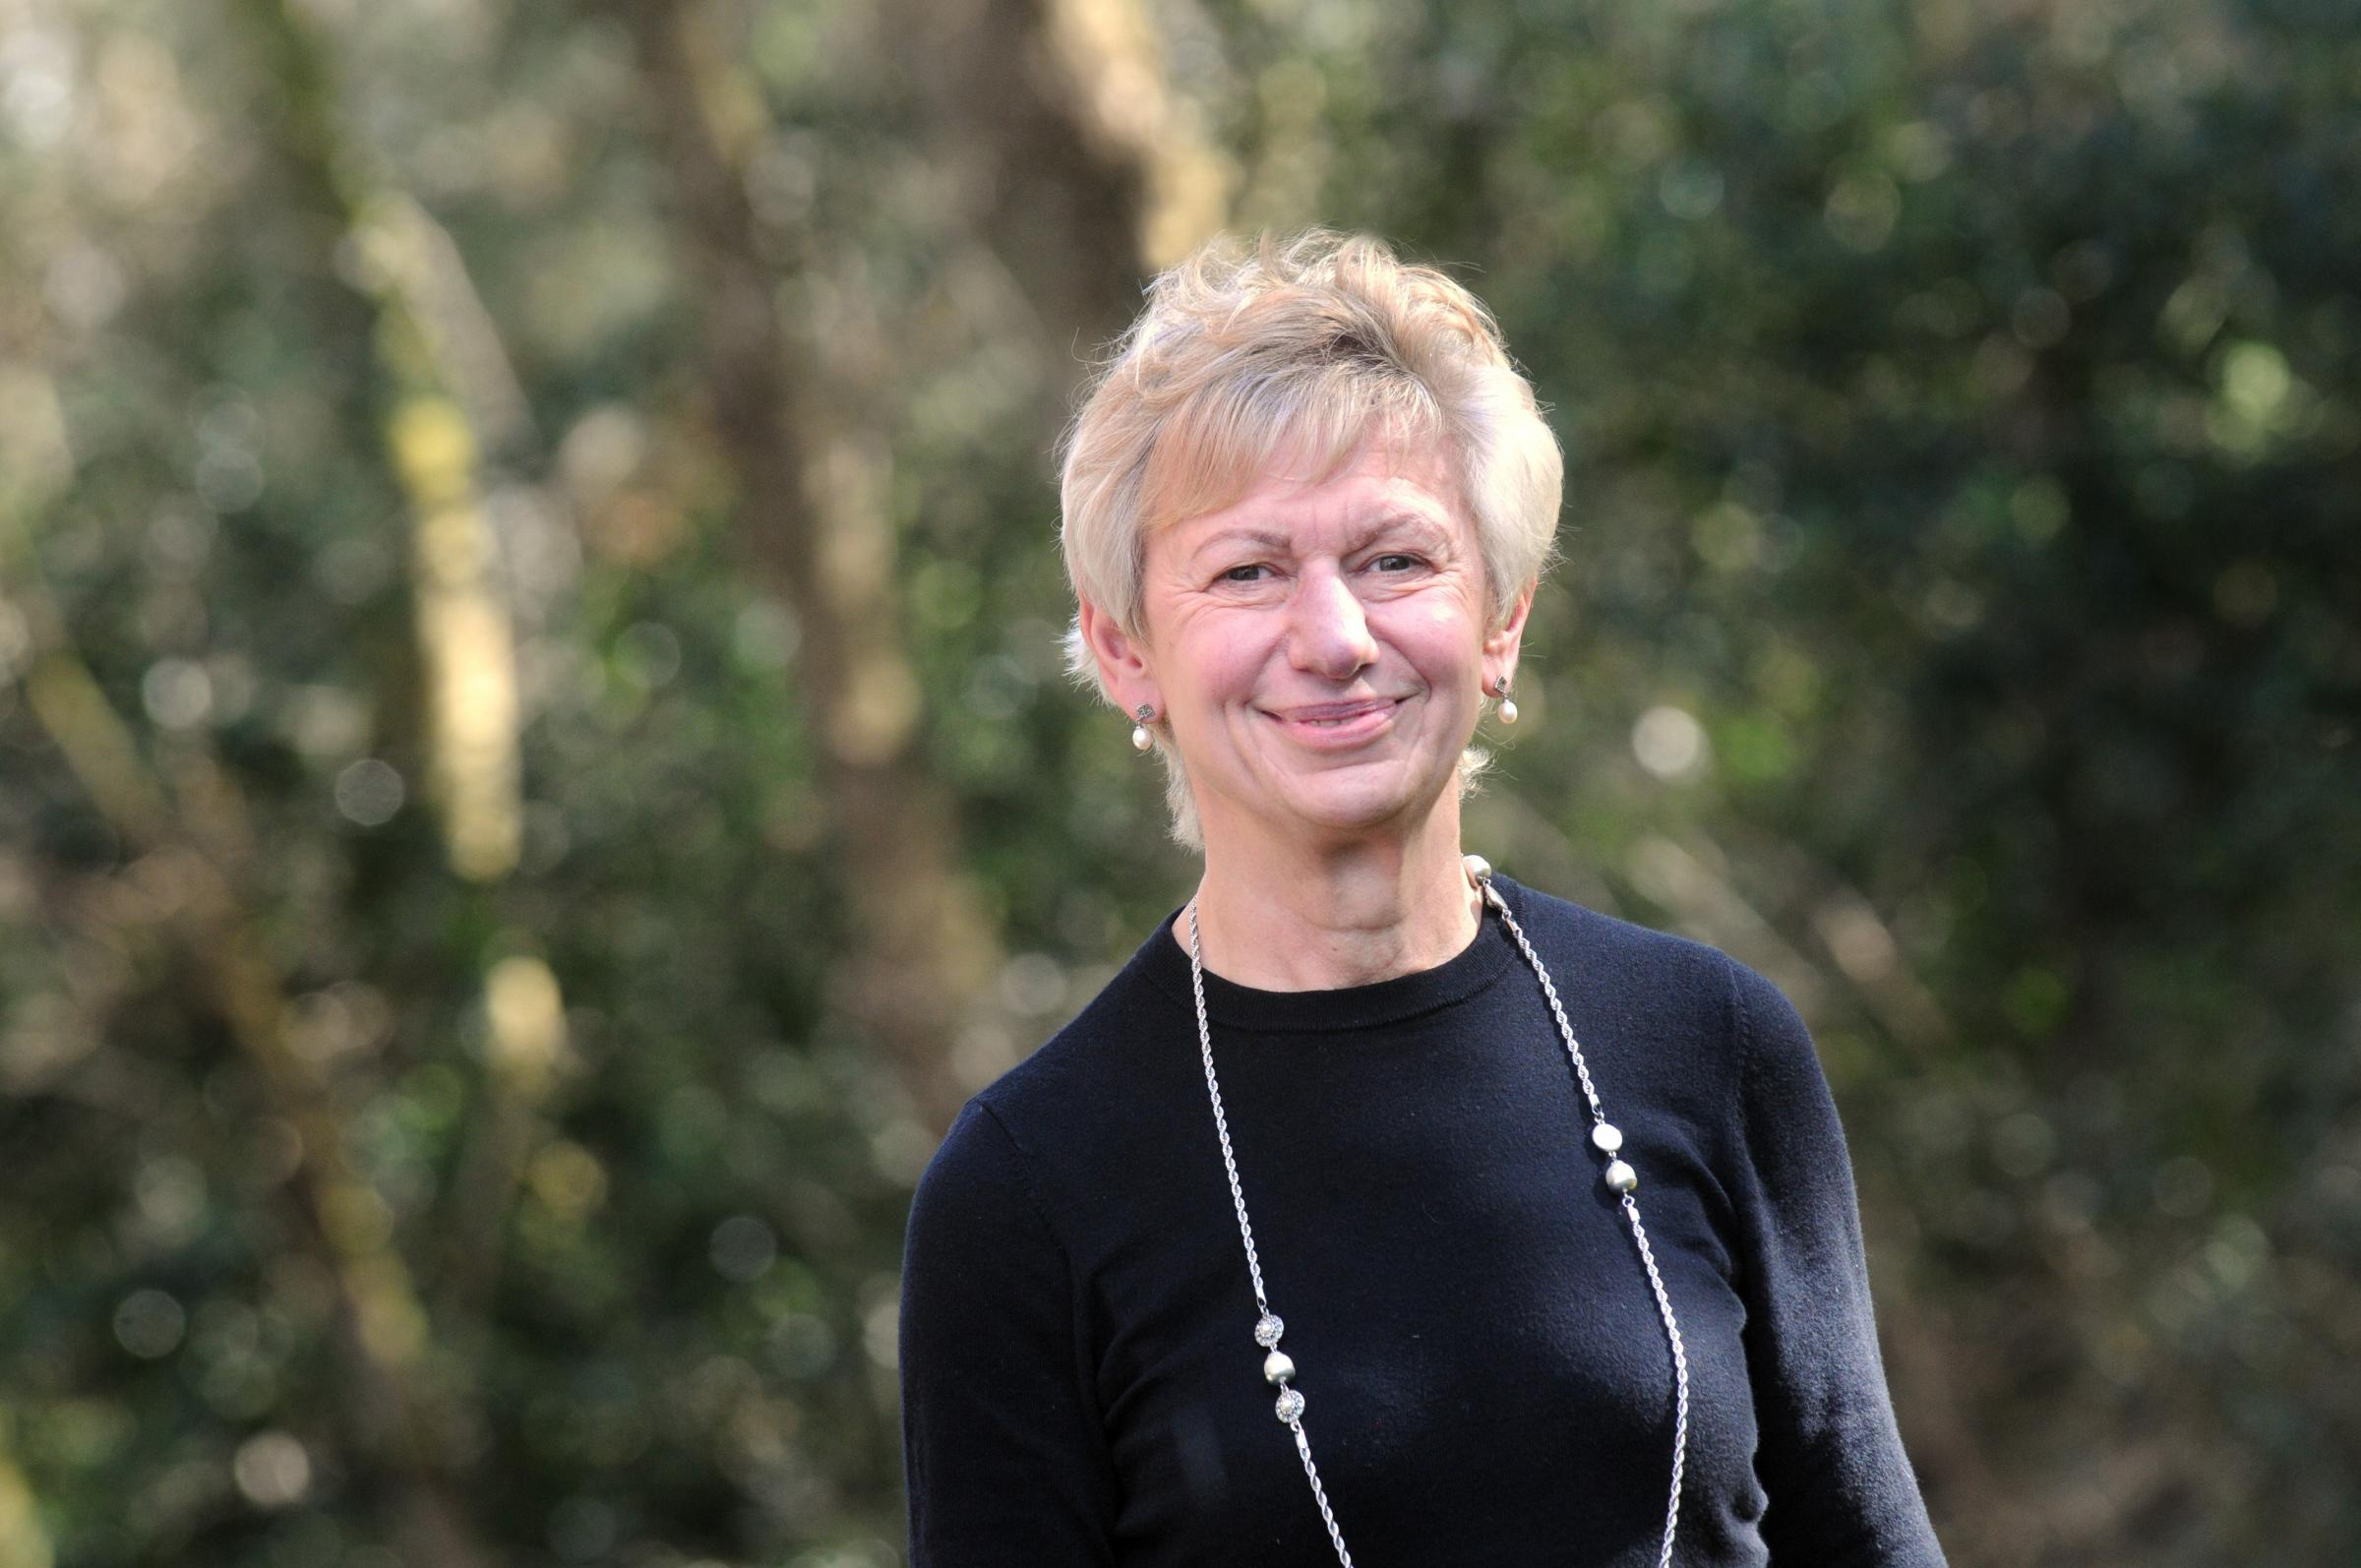 Cllr Rachel Bailey, leader of Cheshire East Council.